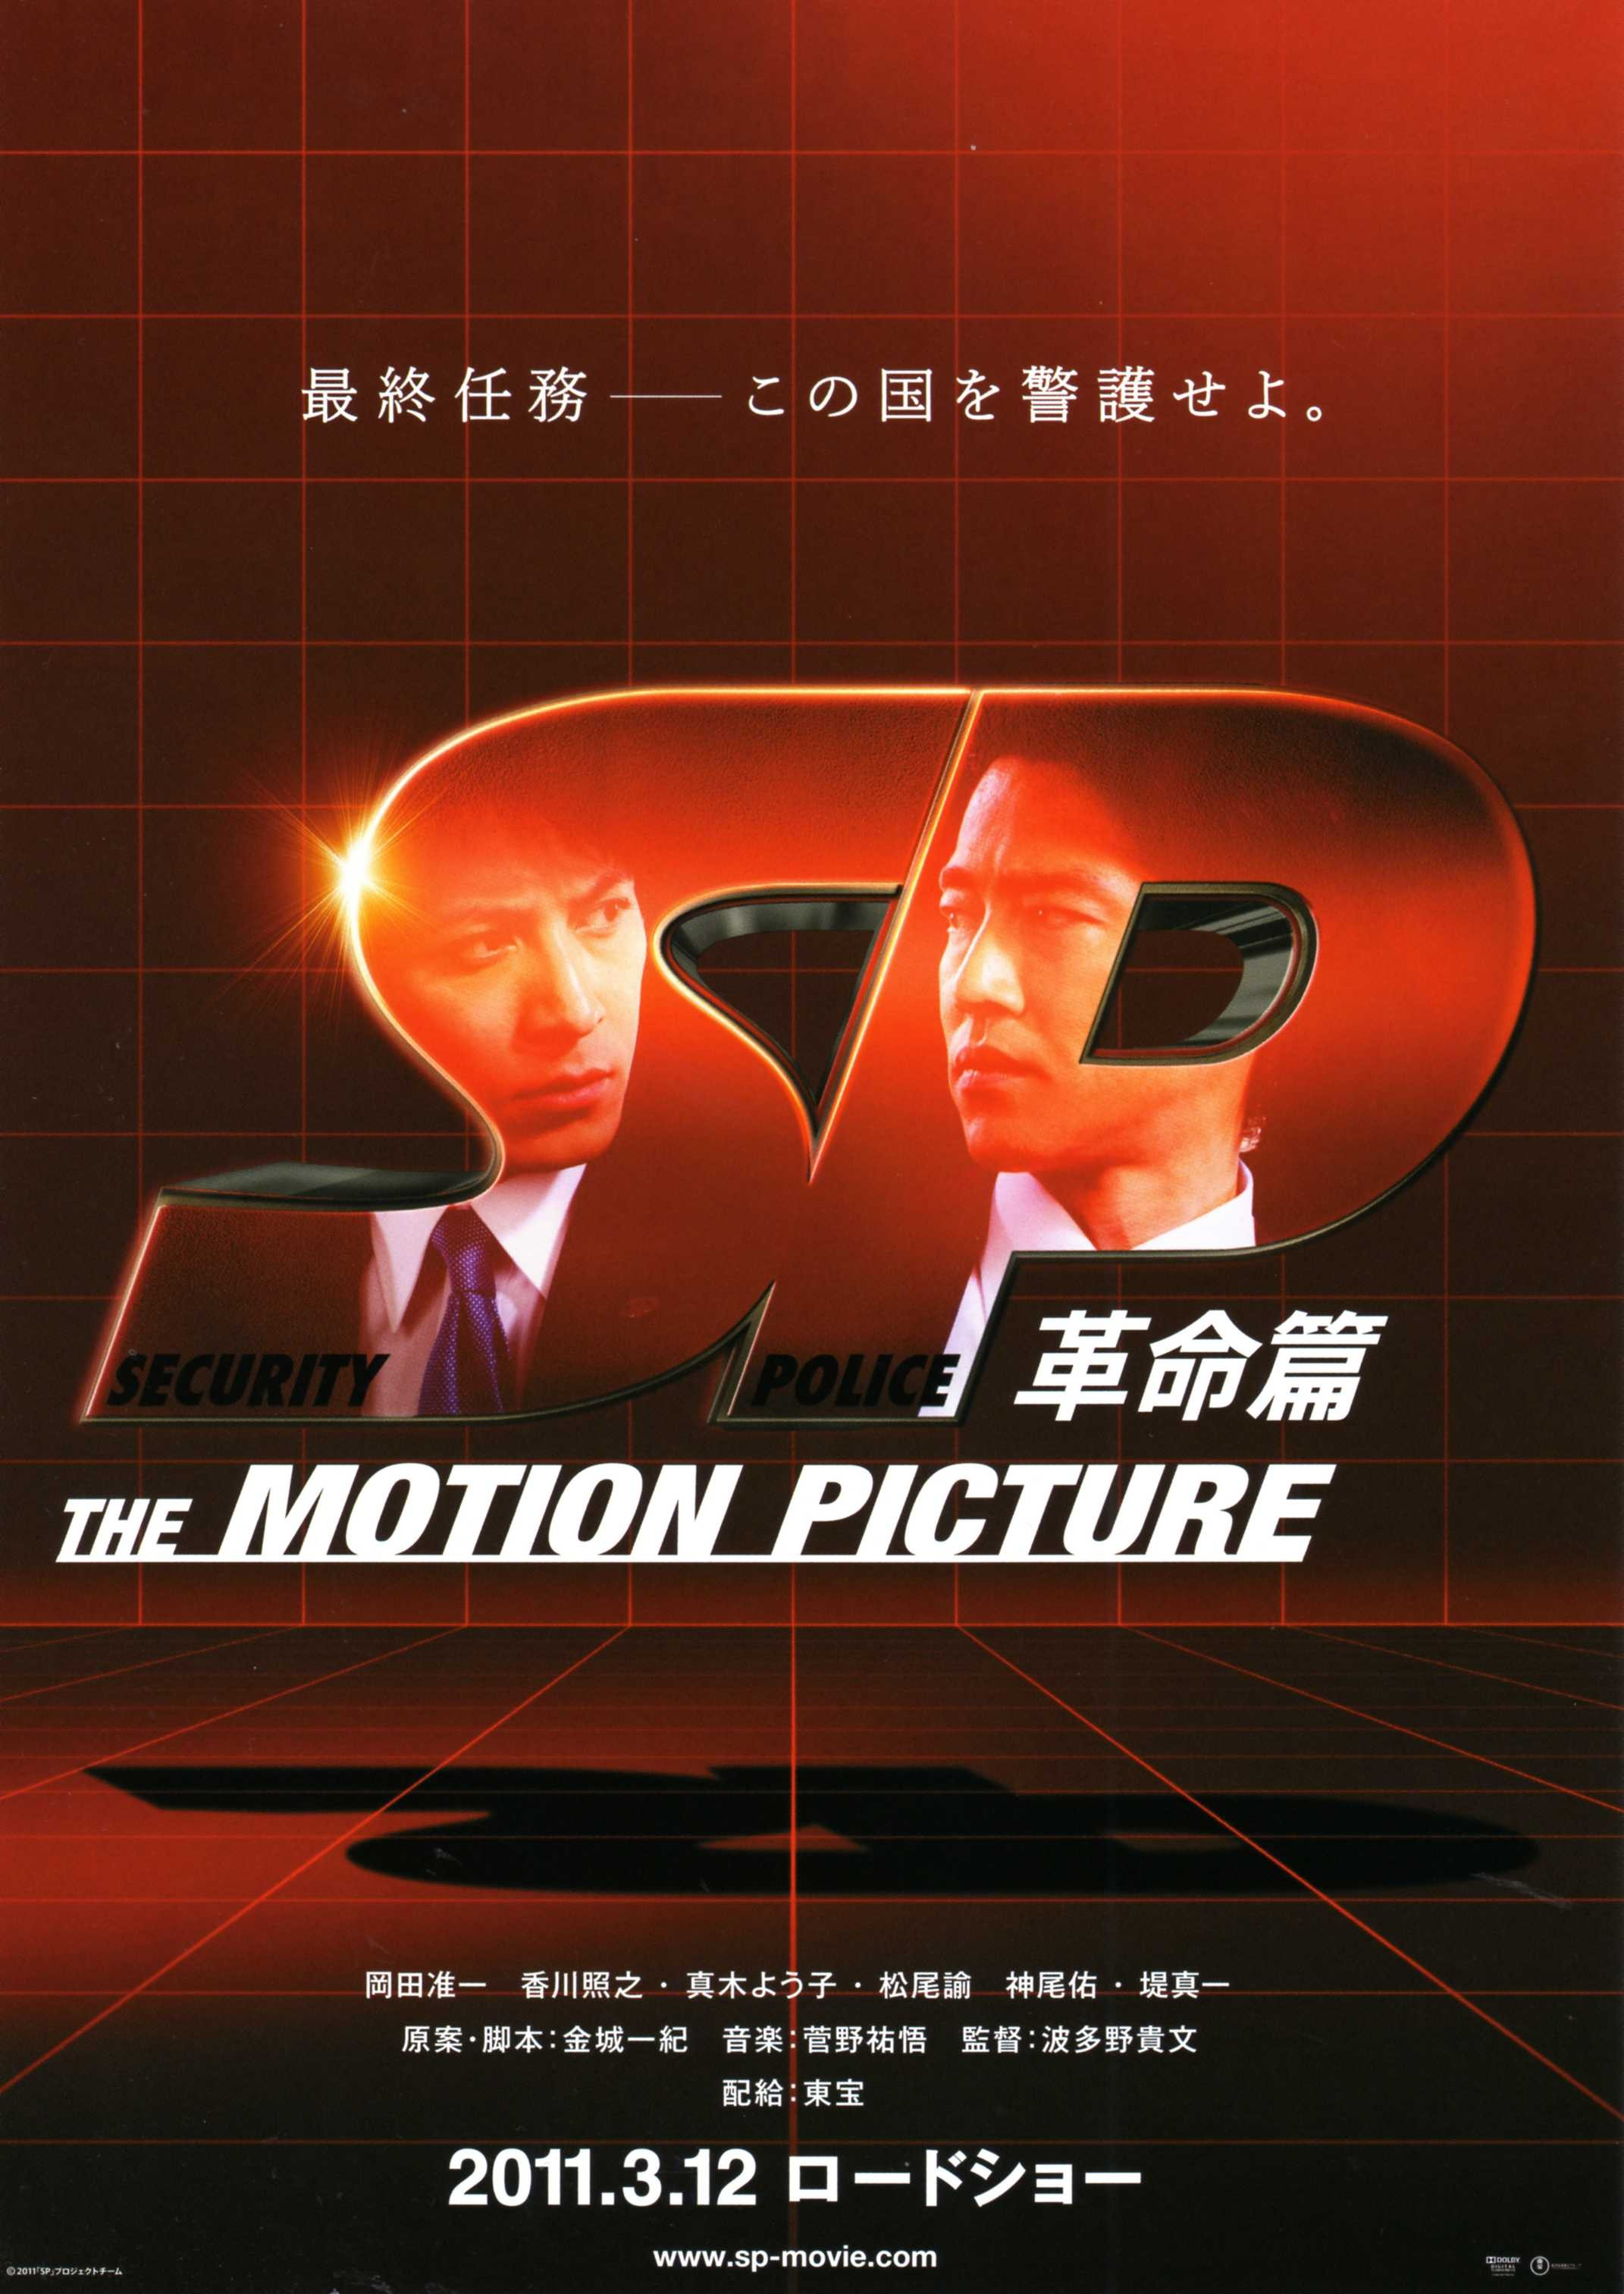 SP THE MOTION PICTURE 革命篇(Episode VI<The Final Episode>) 要人警护官 革命篇